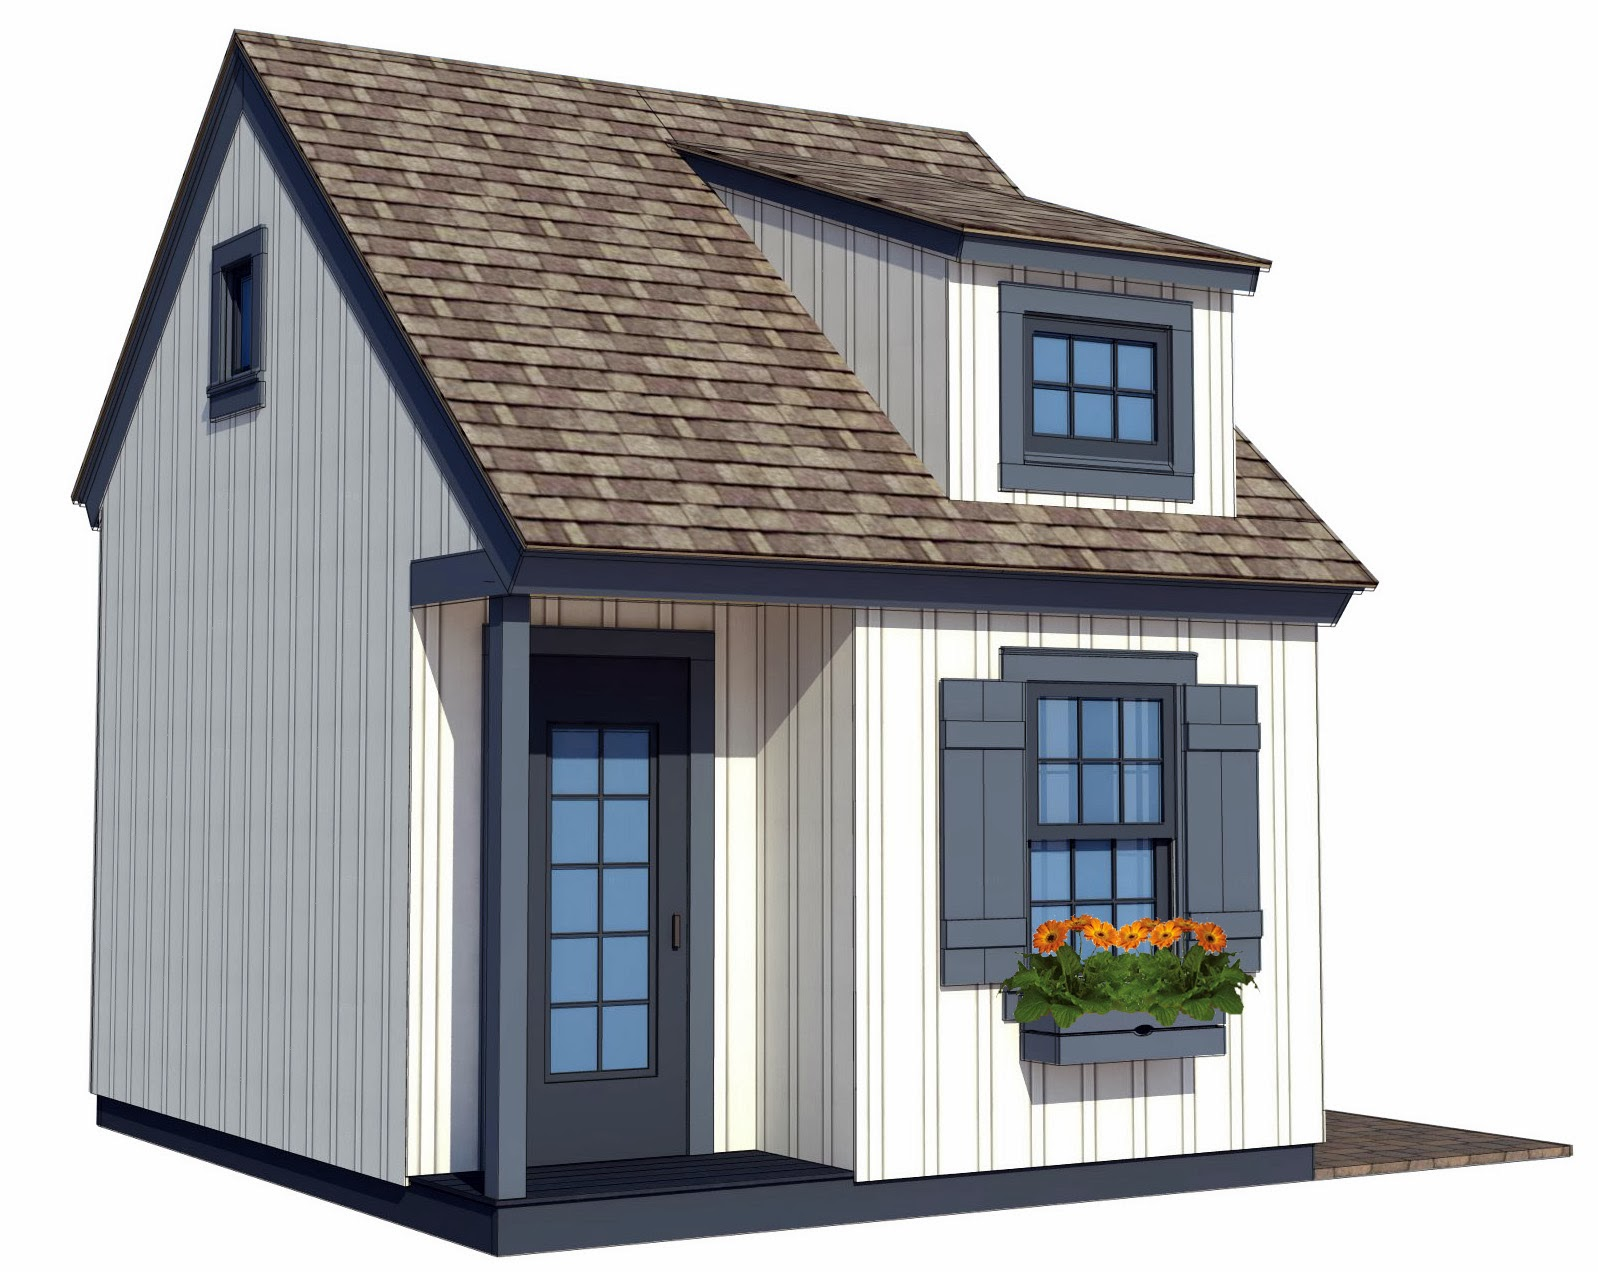 Aplaceimagined traditional playhouse plans for Free playhouse blueprints